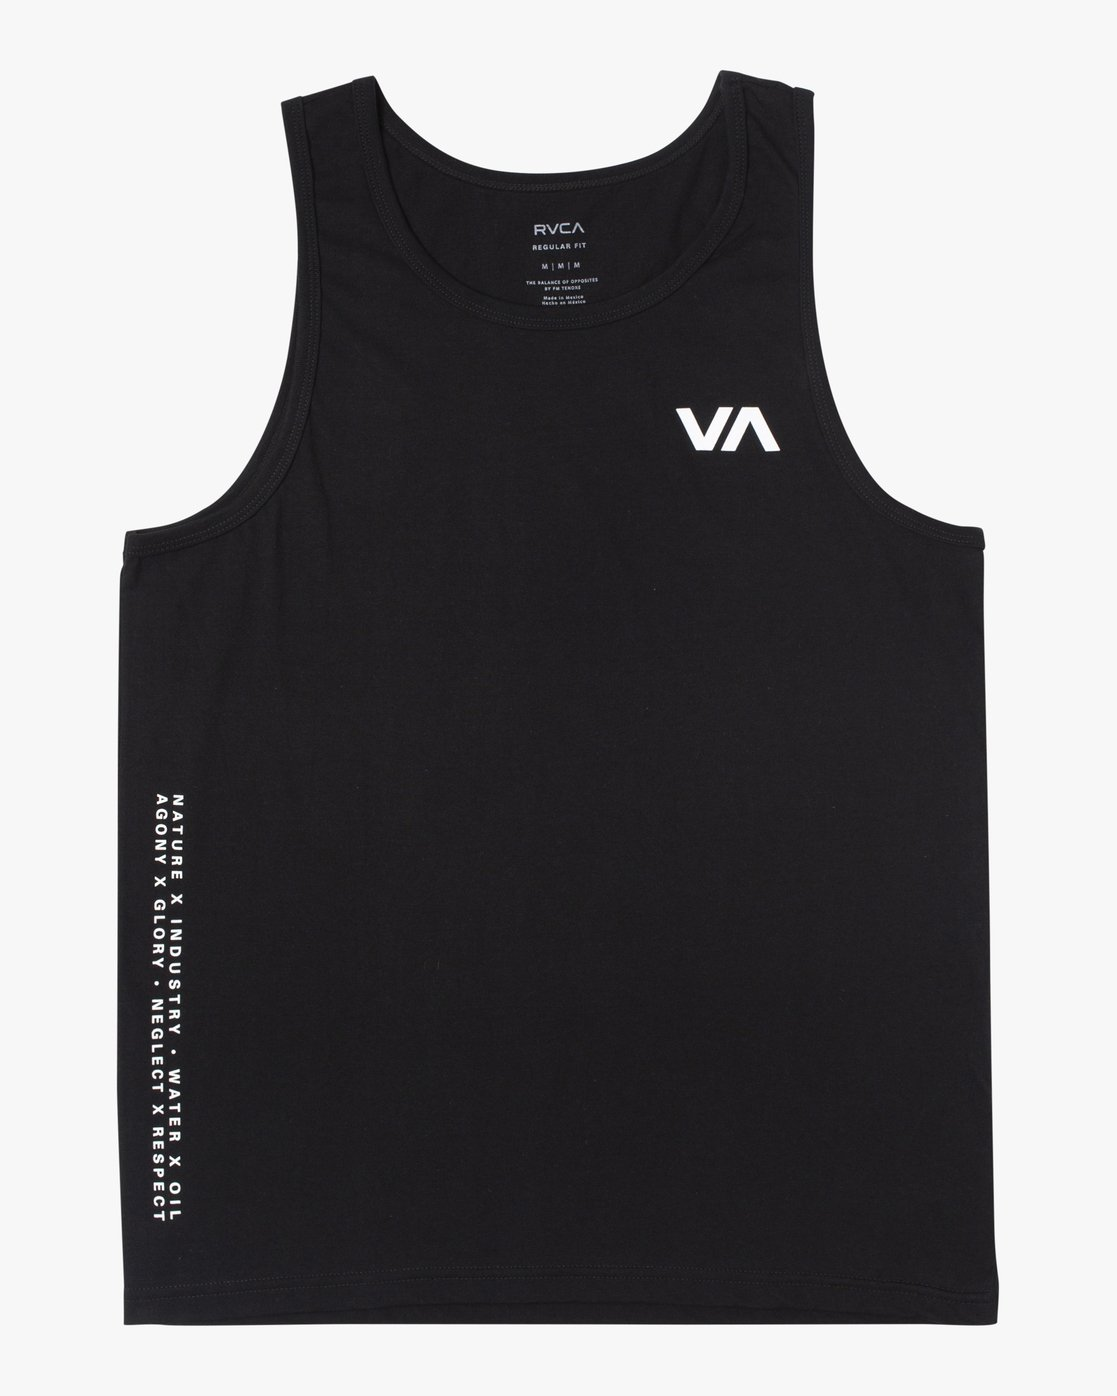 0 BALANCE ARC TANK TOP Black V4813RBA RVCA